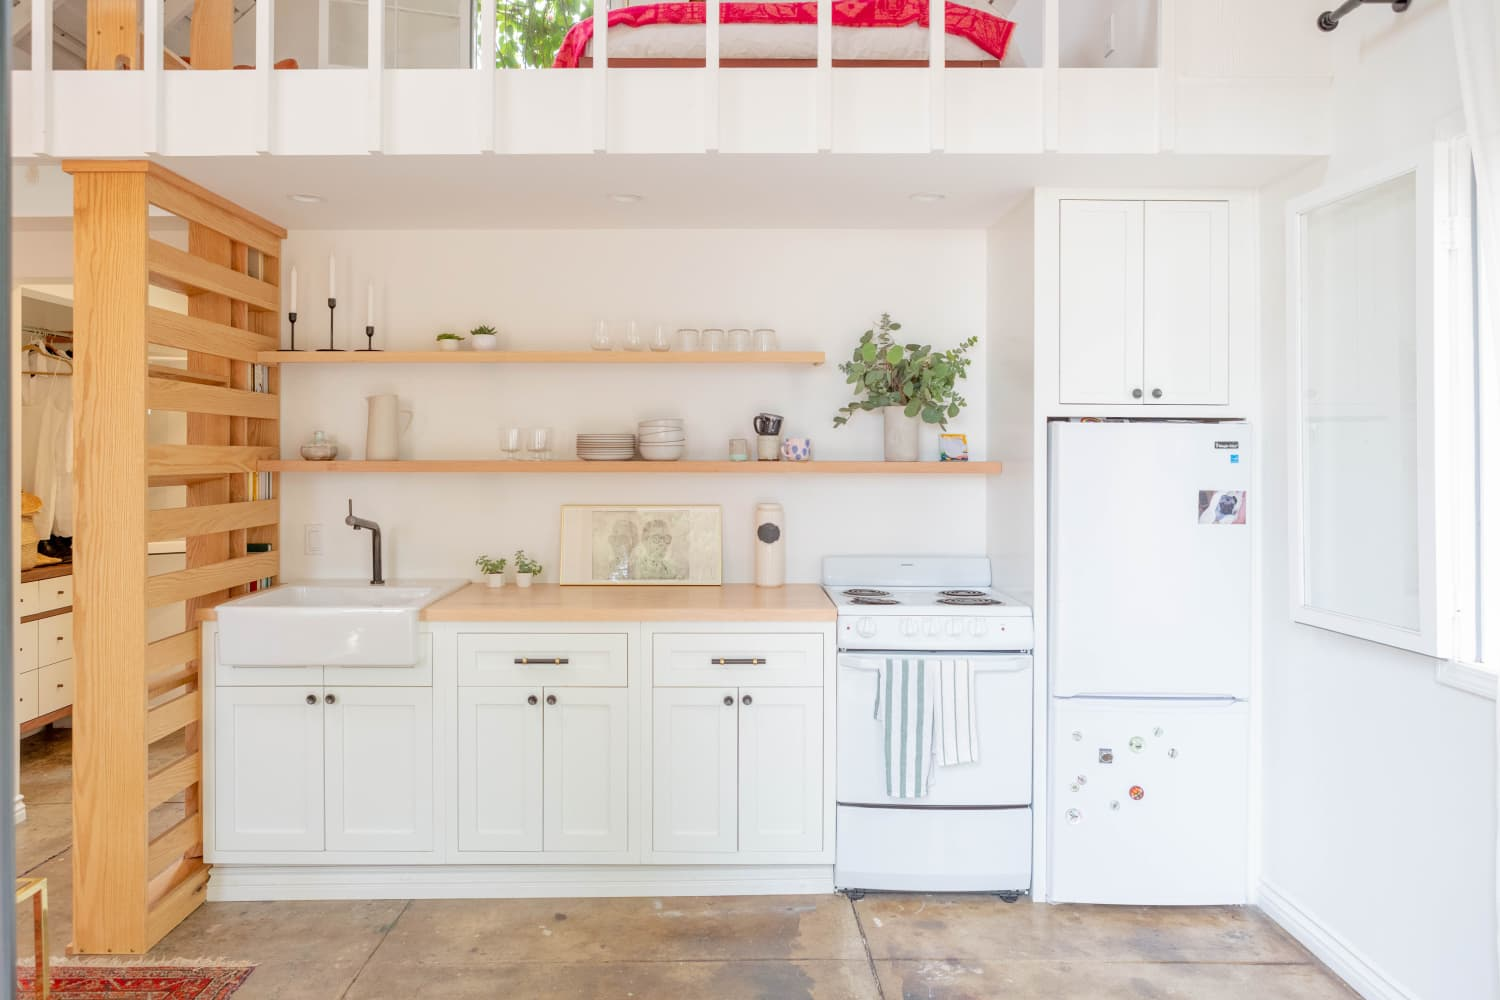 Weekend Project: Clean Your Washer/Dryer, Dishwasher, Or Another Appliance